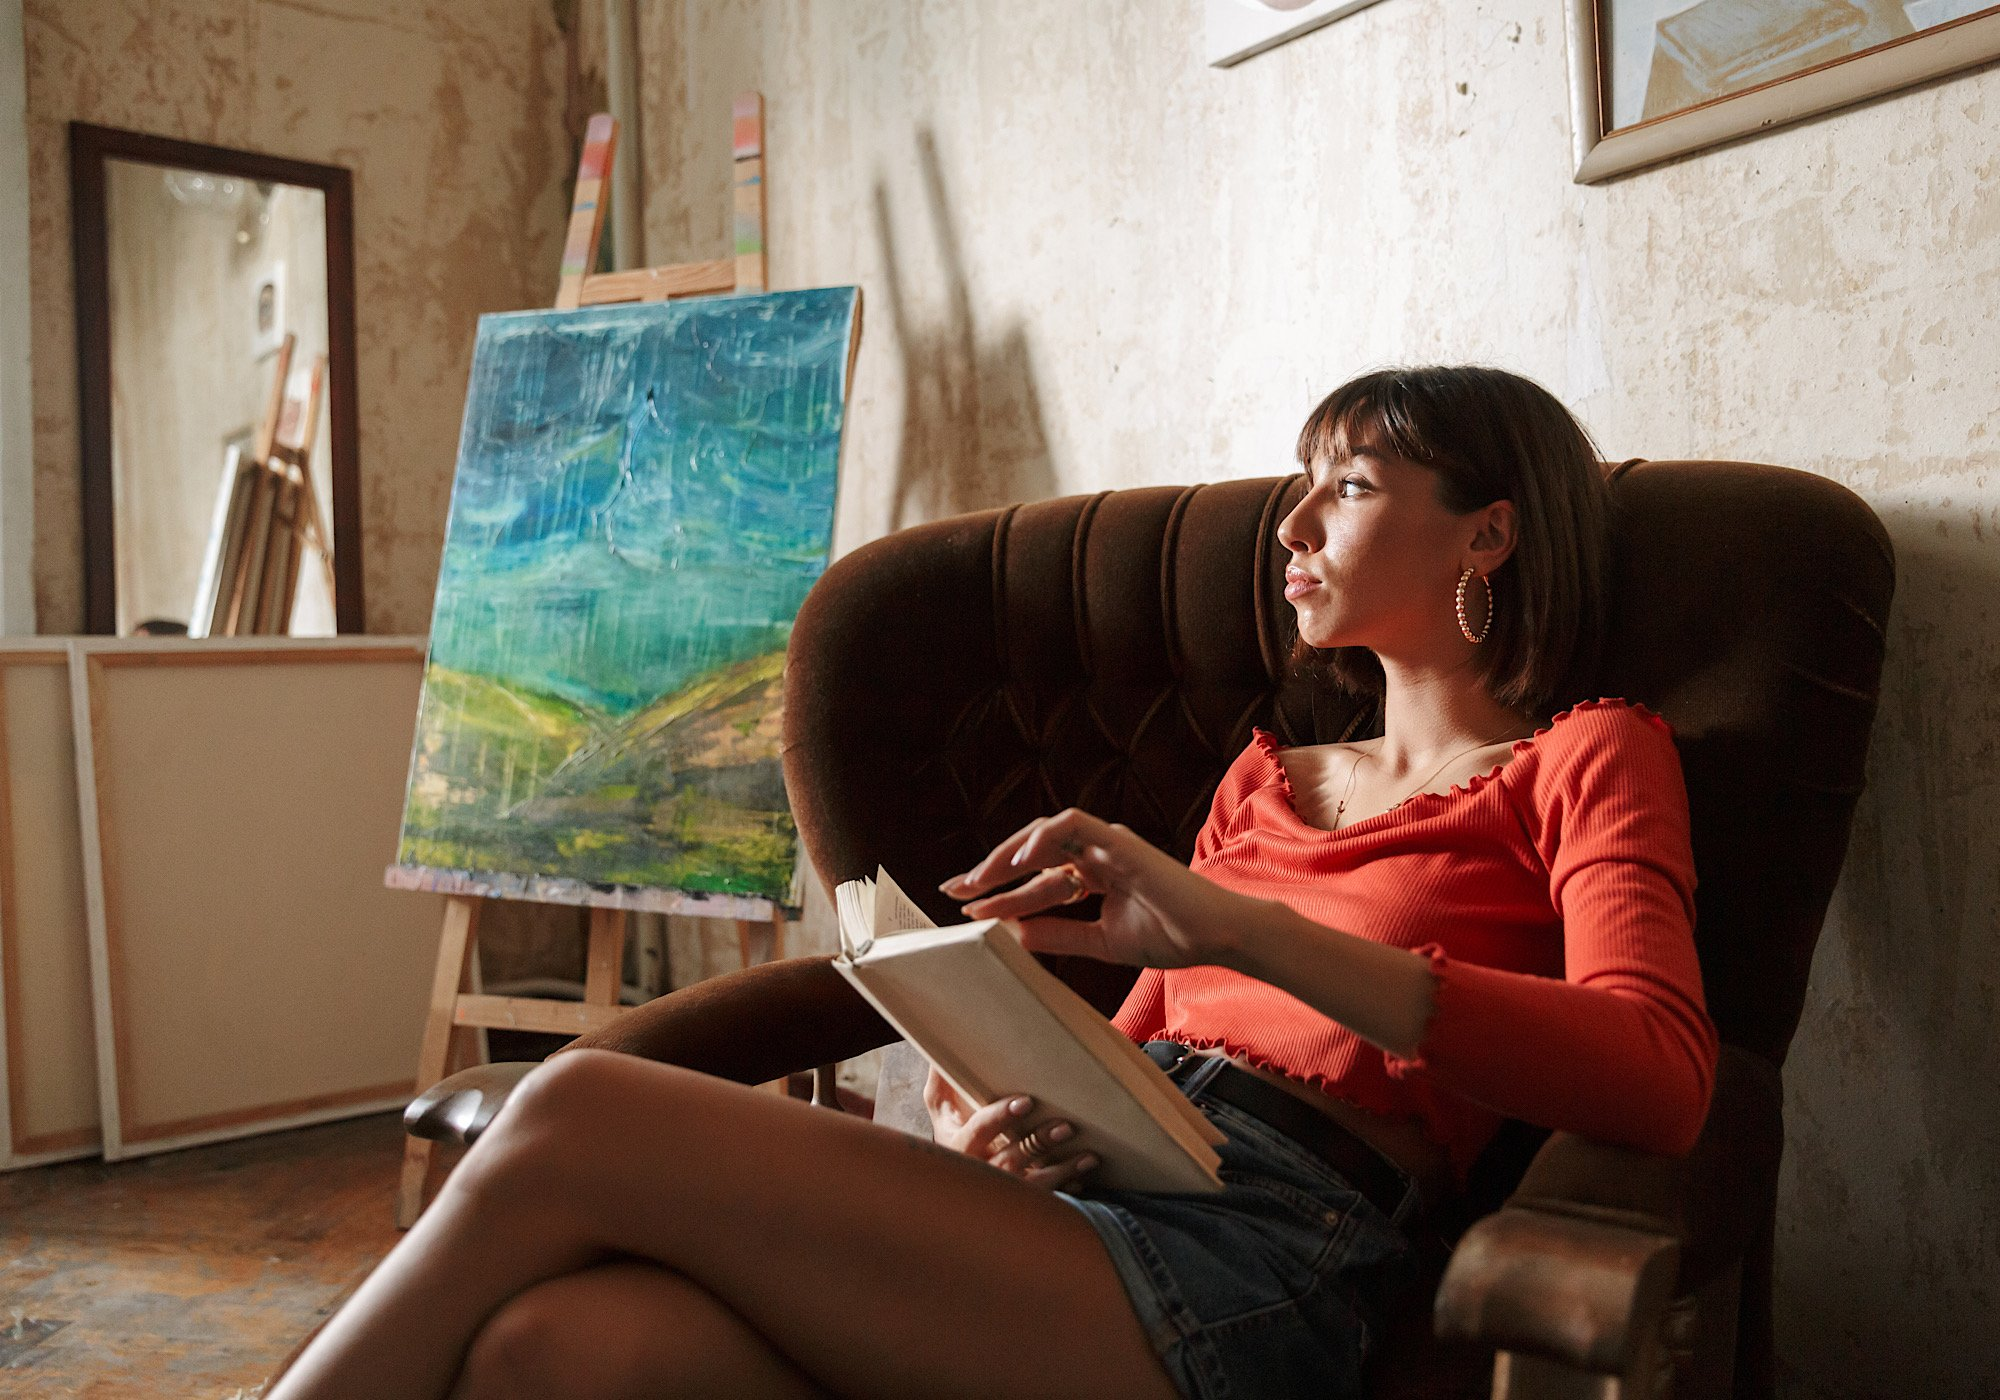 Beautiful young woman artist sitting on armchair in the art studio, relaxing, reading book